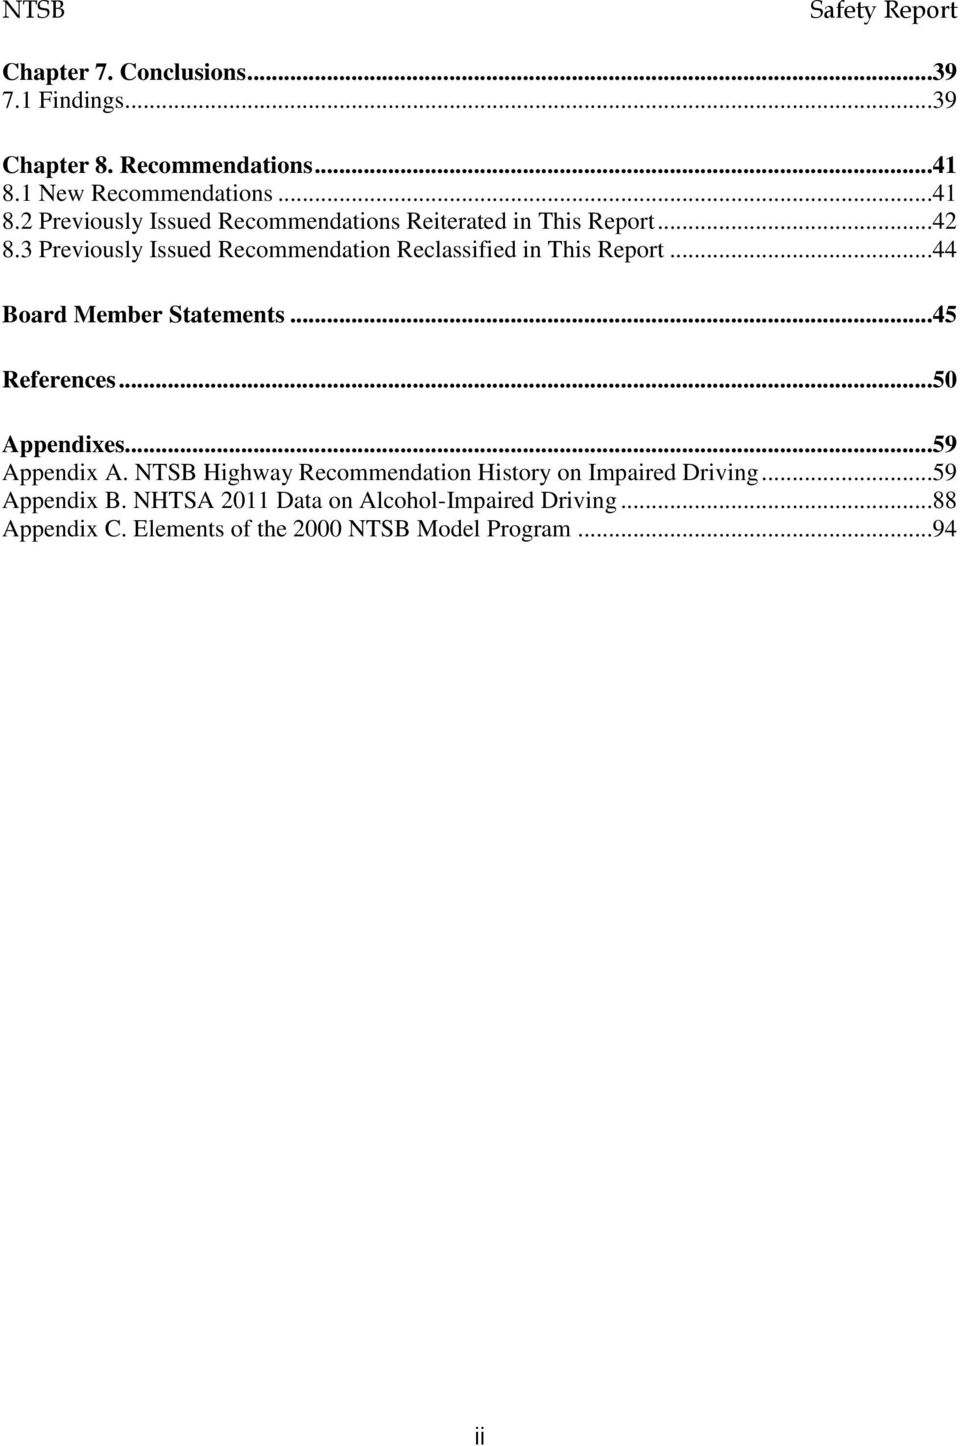 3 Previously Issued Recommendation Reclassified in This Report...44 Board Member Statements...45 References...50 Appendixes.